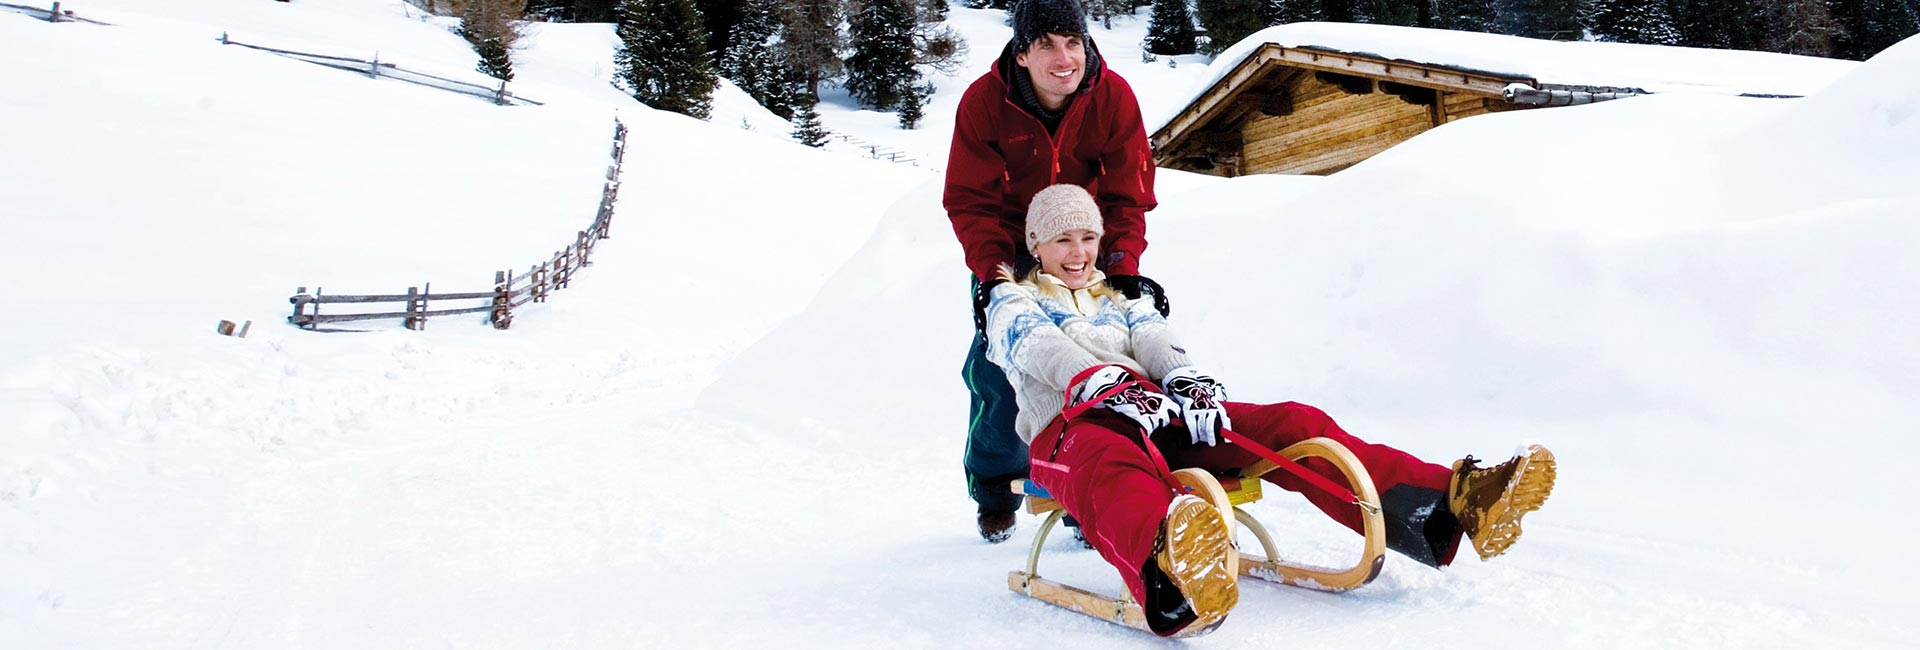 Toboggan Runs promise Fun for all Ages